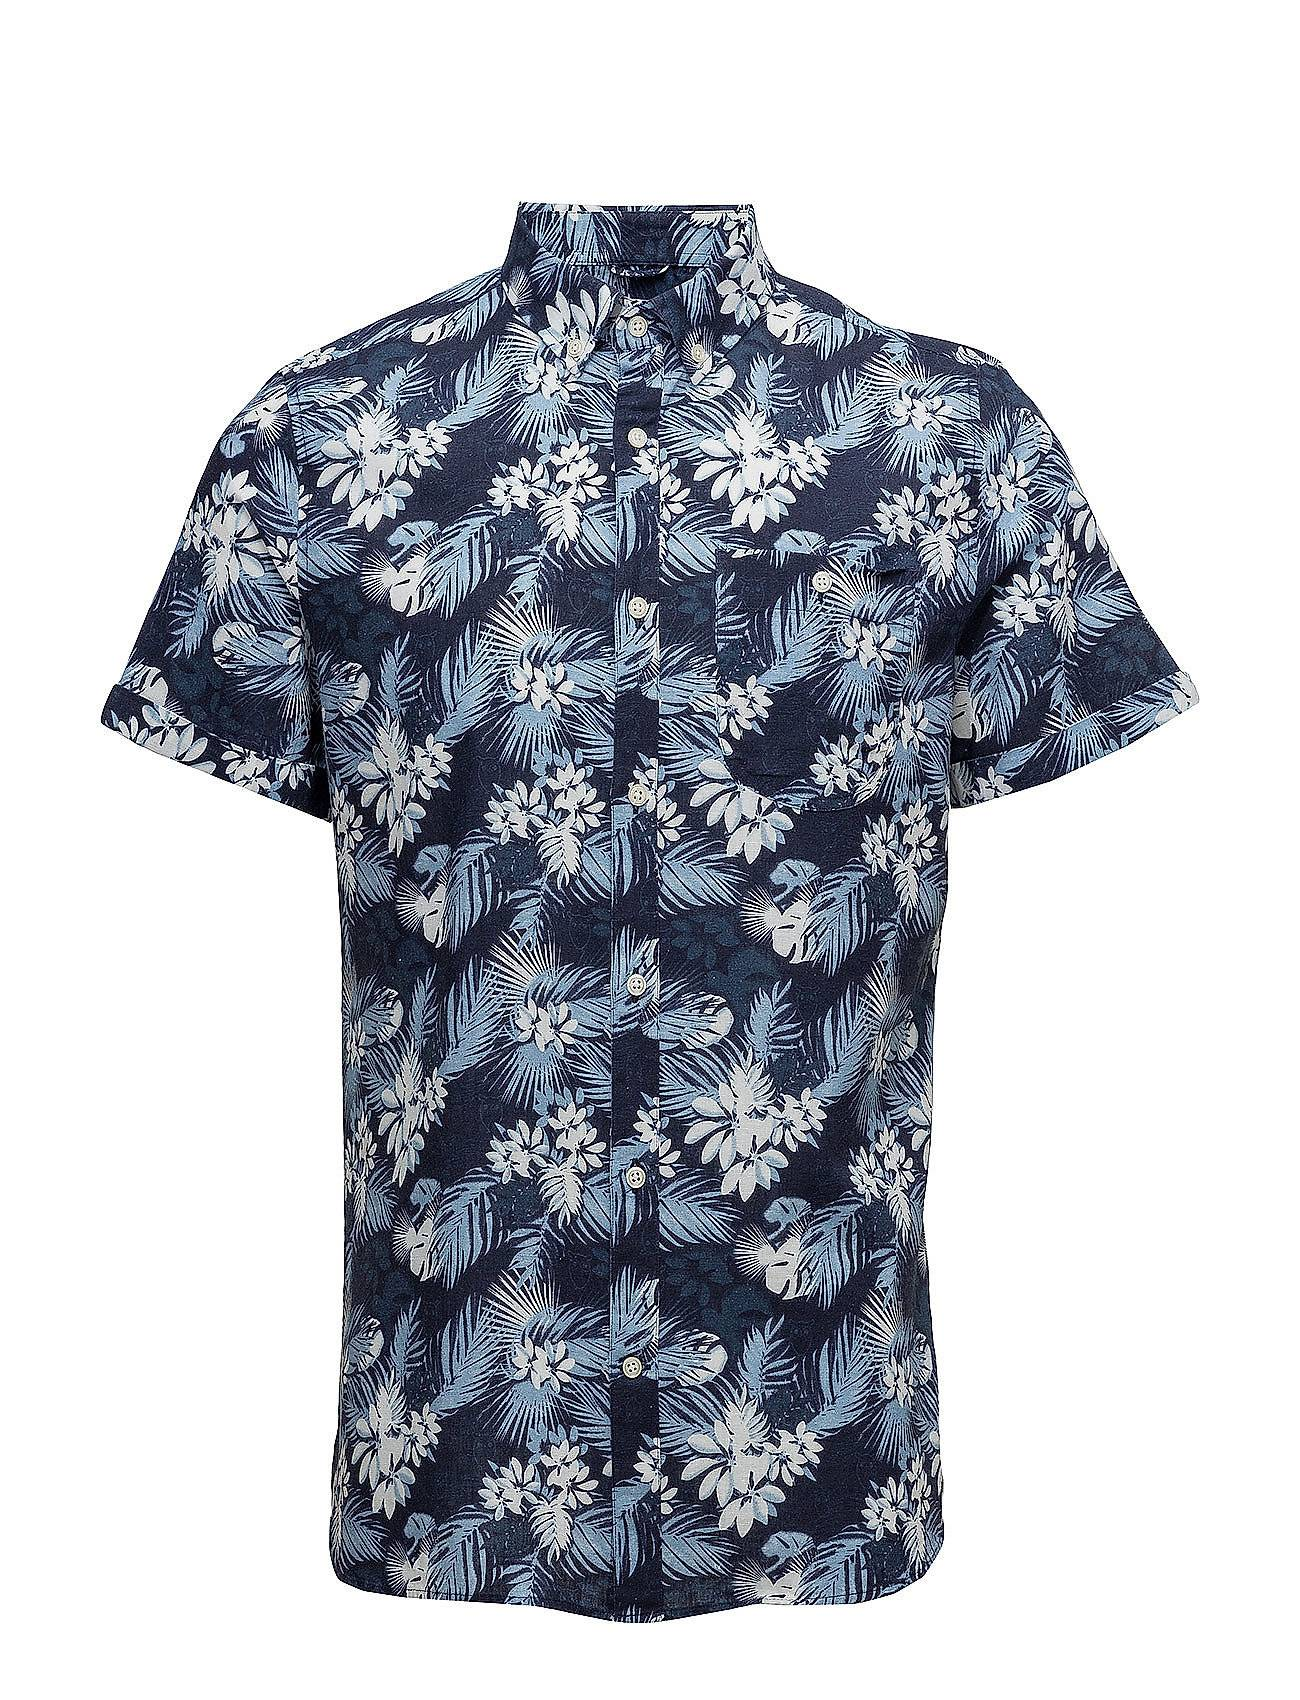 Knowledge Cotton Apparel All Over Printed Co/Linen Shirt - S